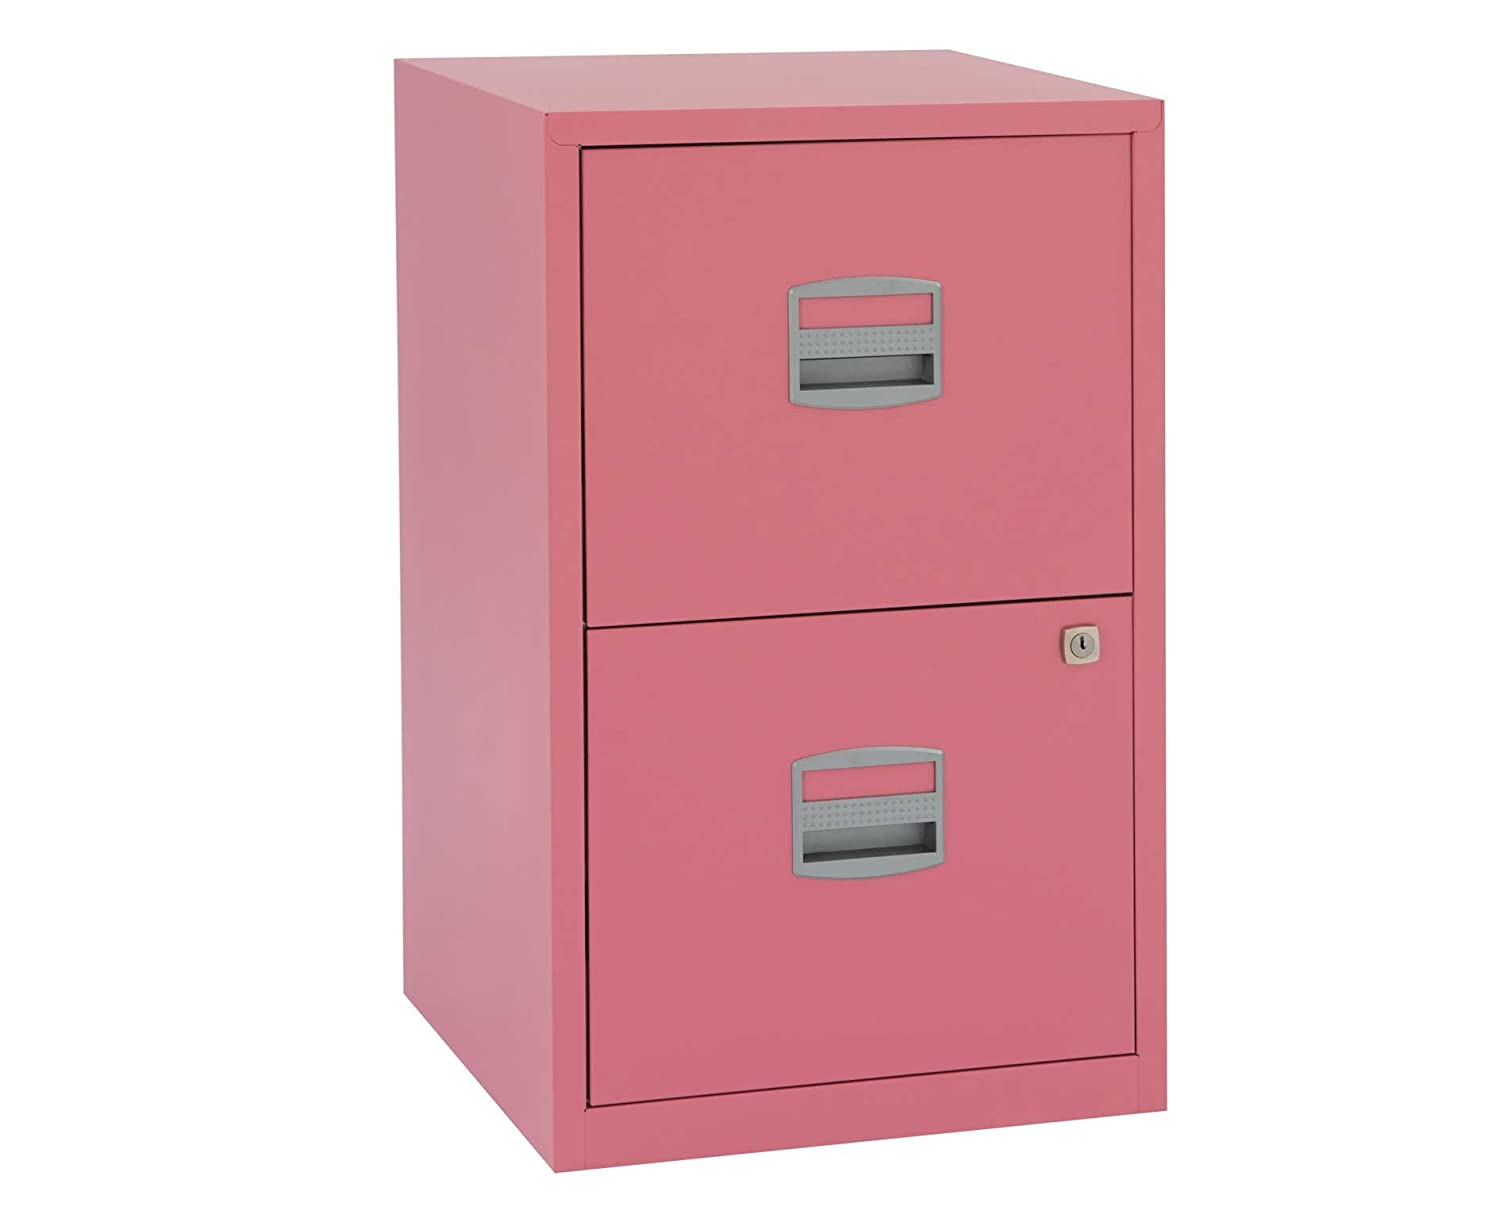 Bisley - Archivador de 2 cajones (Metal, A4), Color Rosa: Amazon.es: Hogar